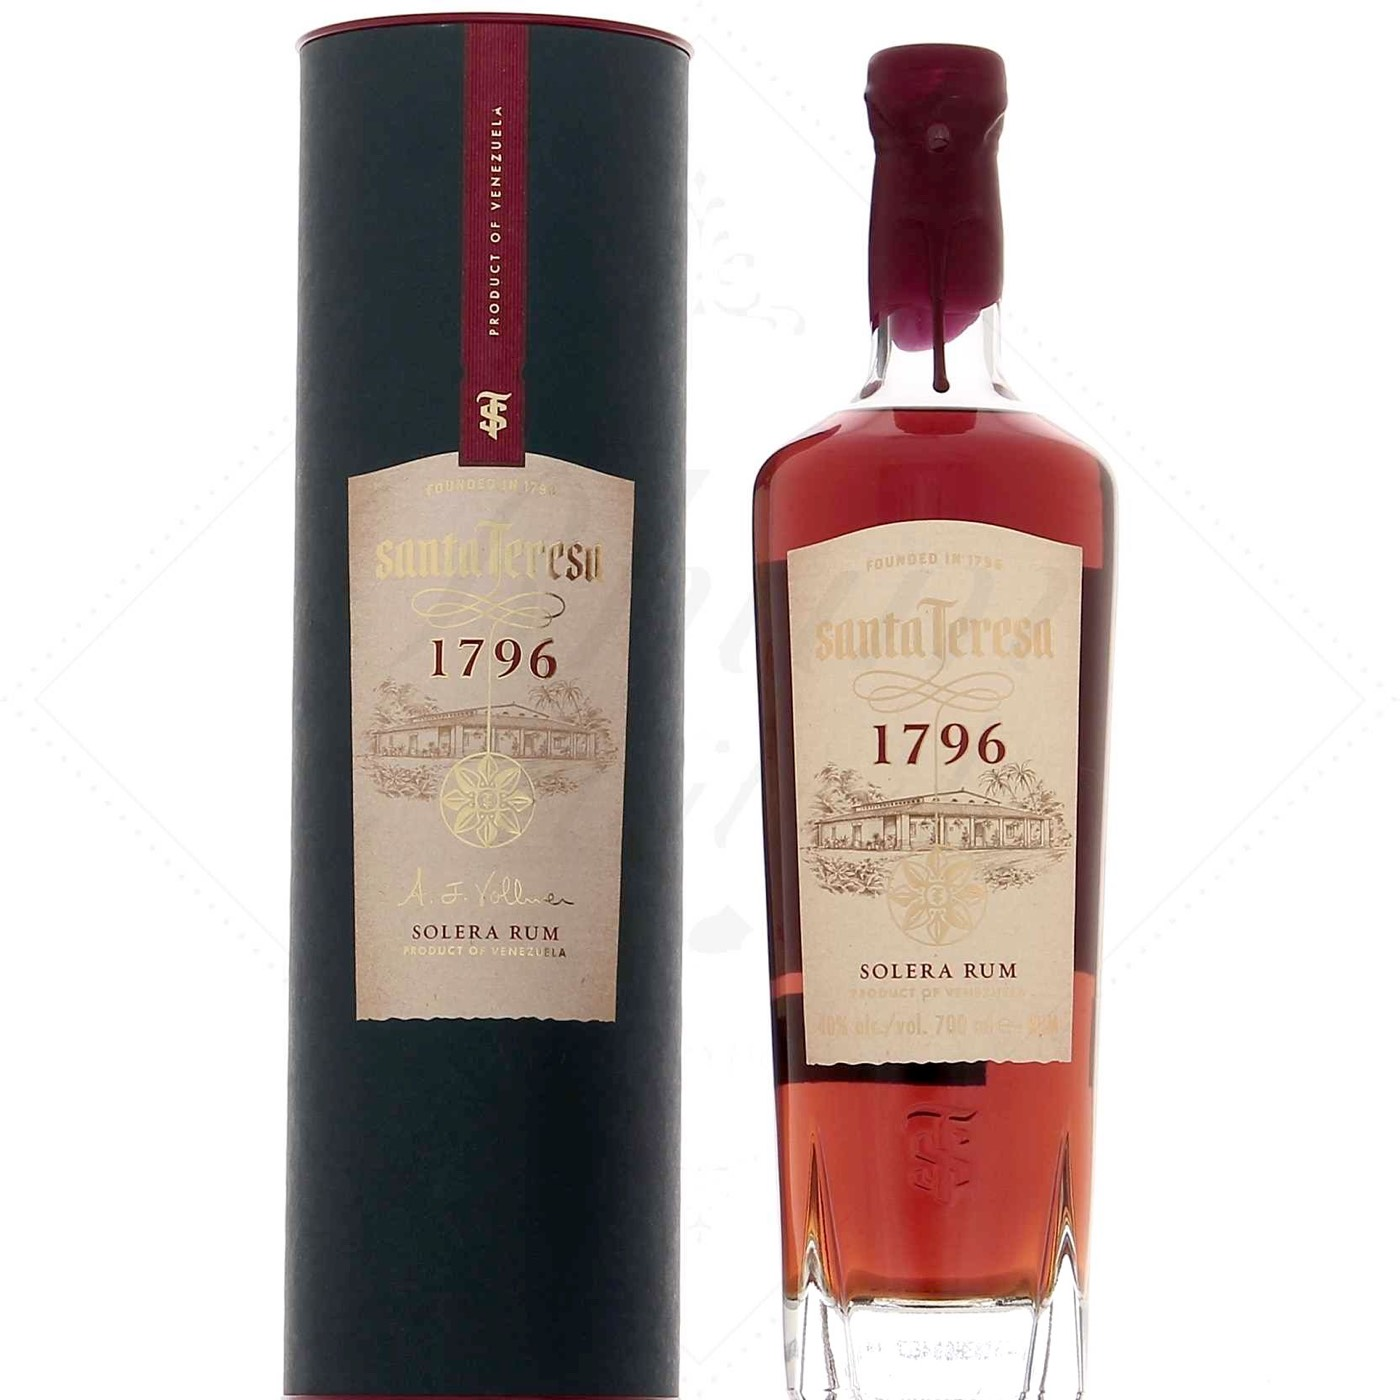 Bottle image of 1796 Solera Rum